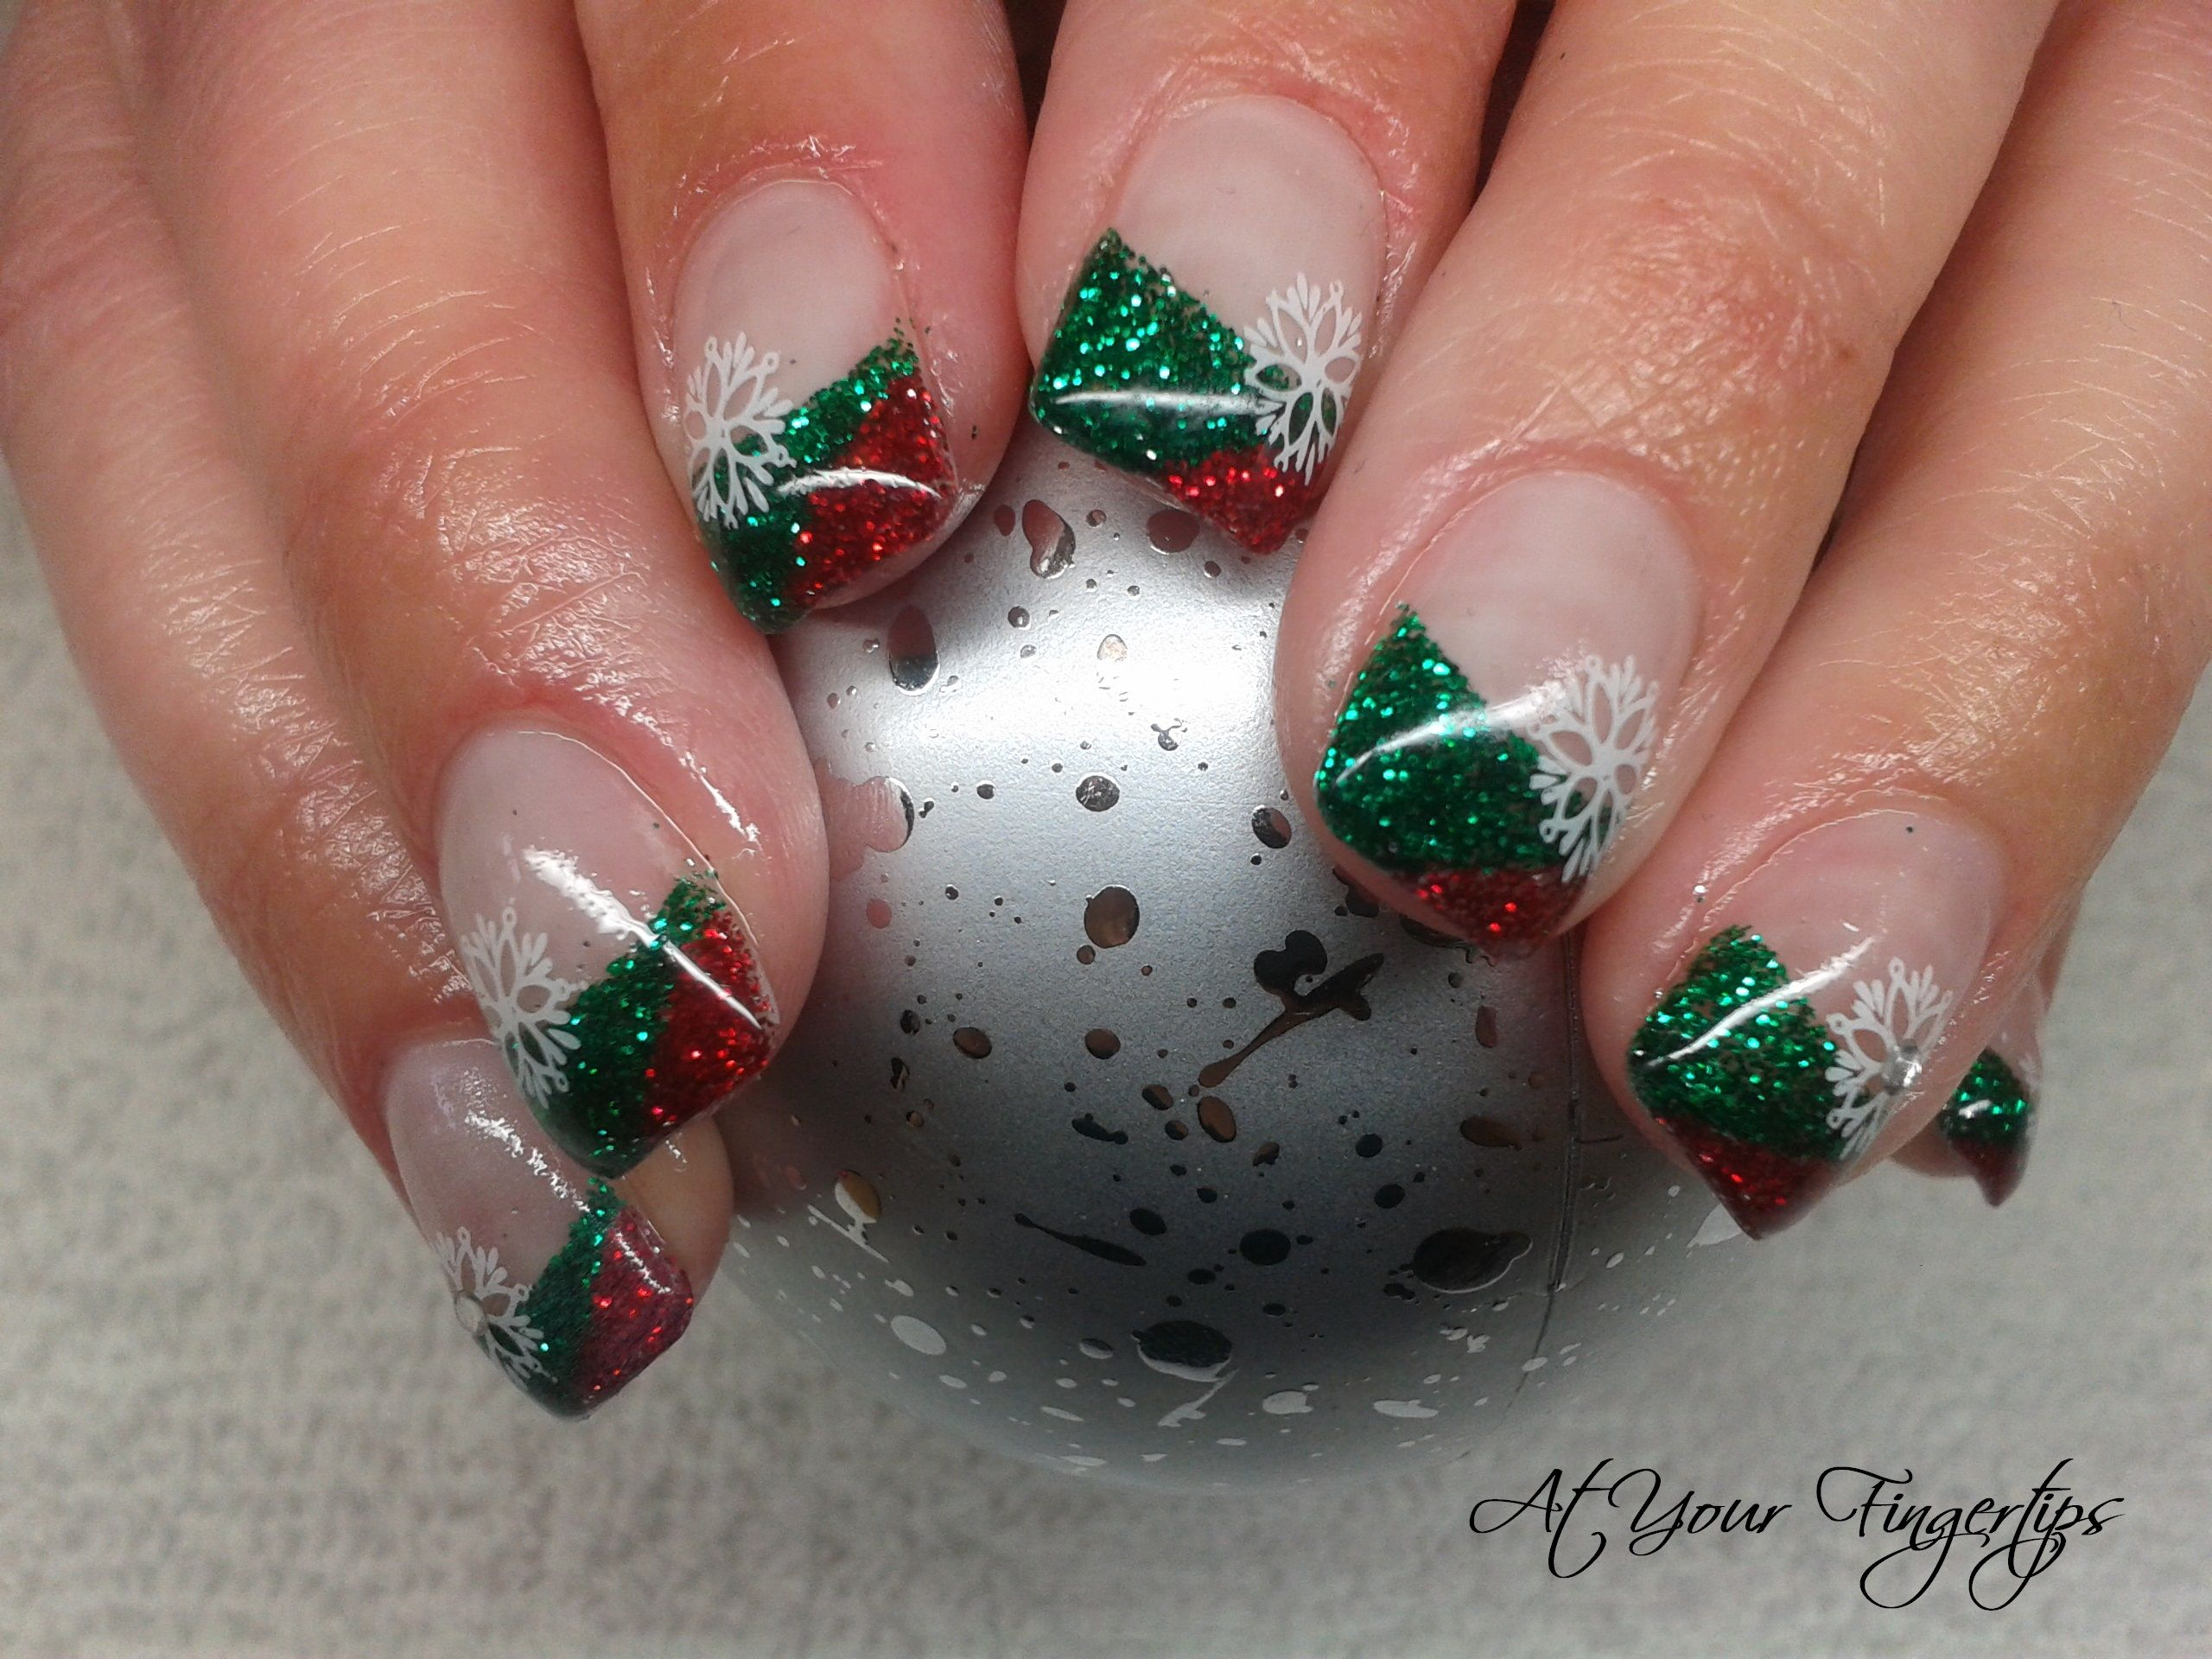 Christmas gel nails | *NAILS* | Pinterest | Christmas gel nails ...